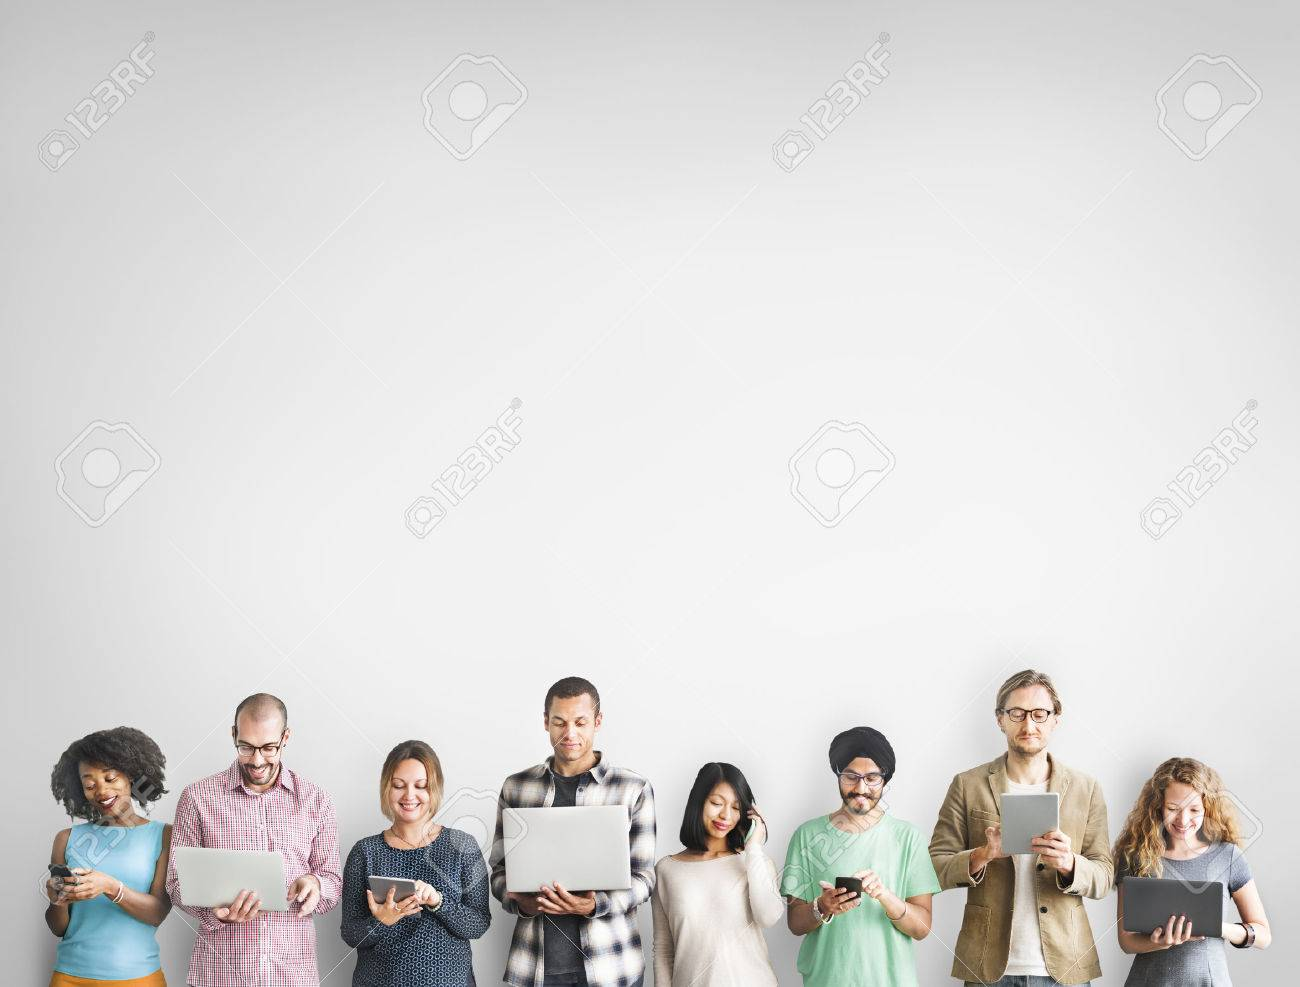 Group of People Connection Digital Device Concept - 53714678